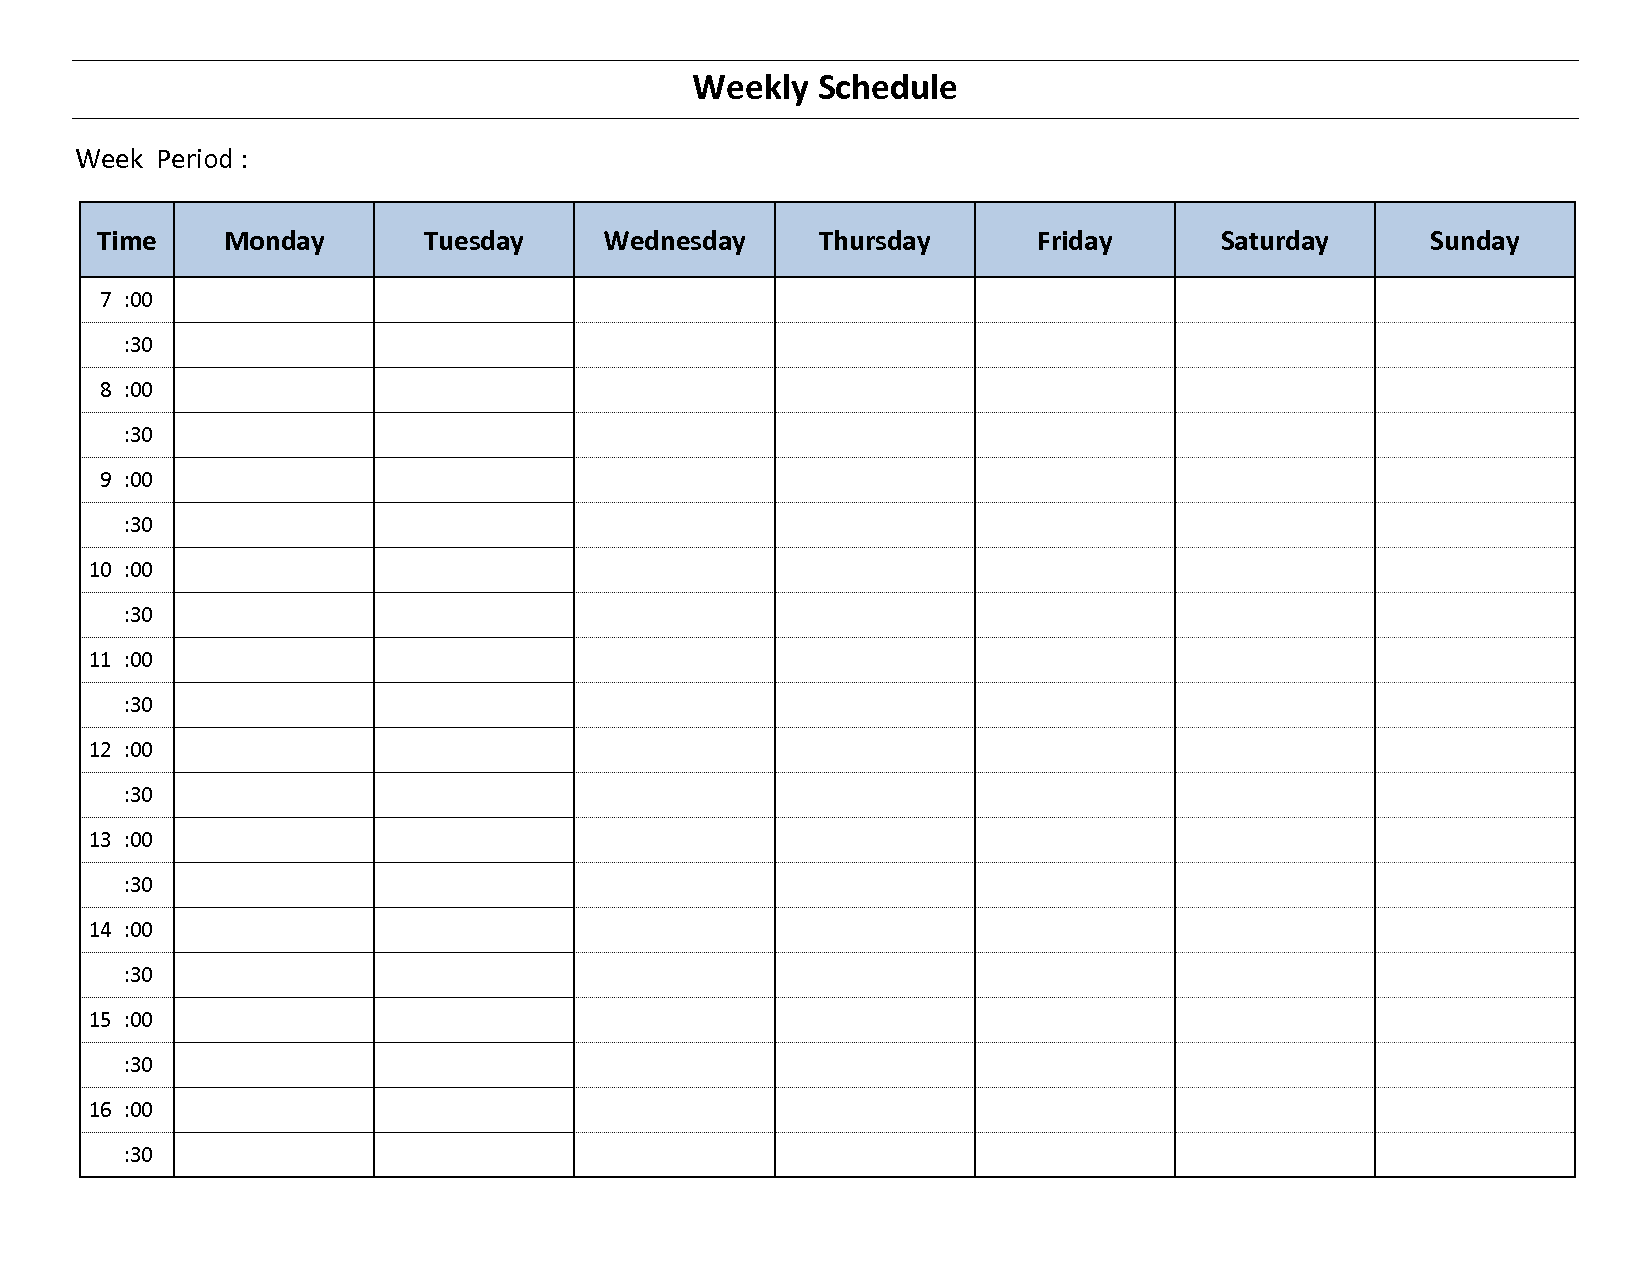 Construction Schedule Template Excel Free Download Excel Templates - Monday through friday schedule template